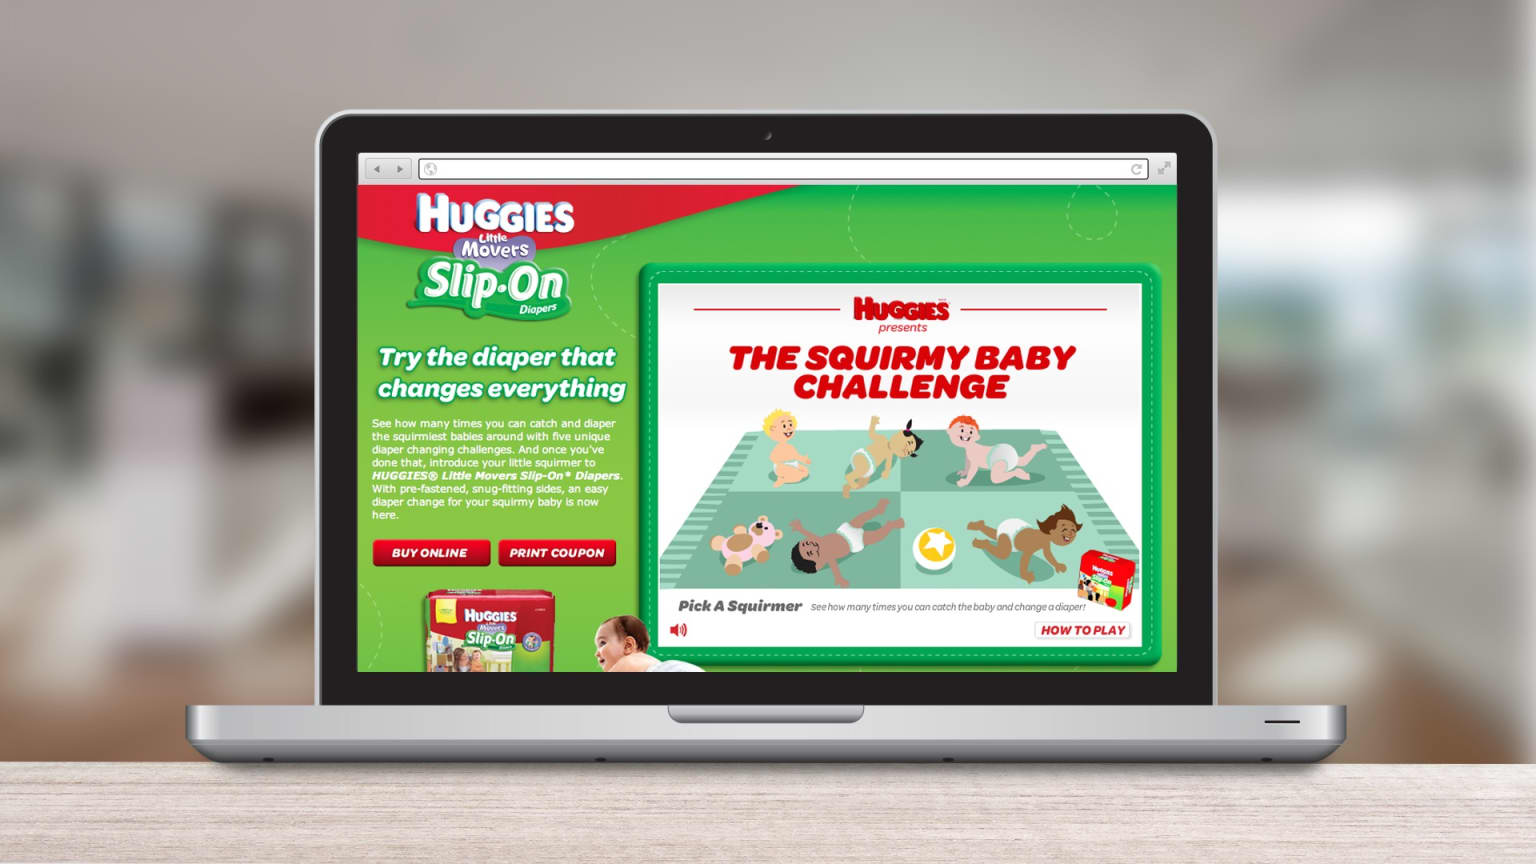 Huggies Digital Experiences